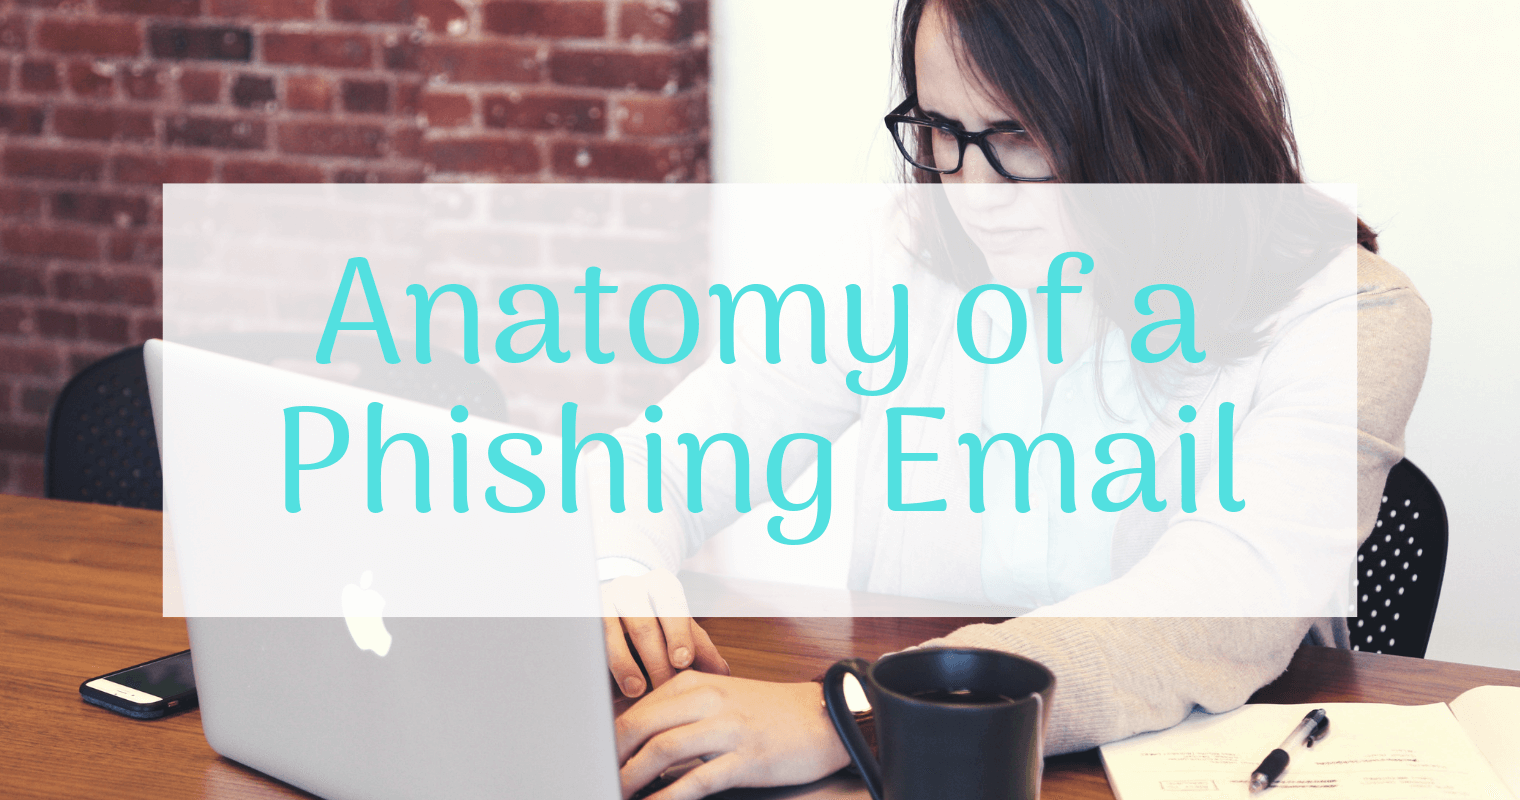 How can you tell if an email is legitimate or if it comes from a hacker trying to steal your personal information? Check out these tips for detecting phishing emails.